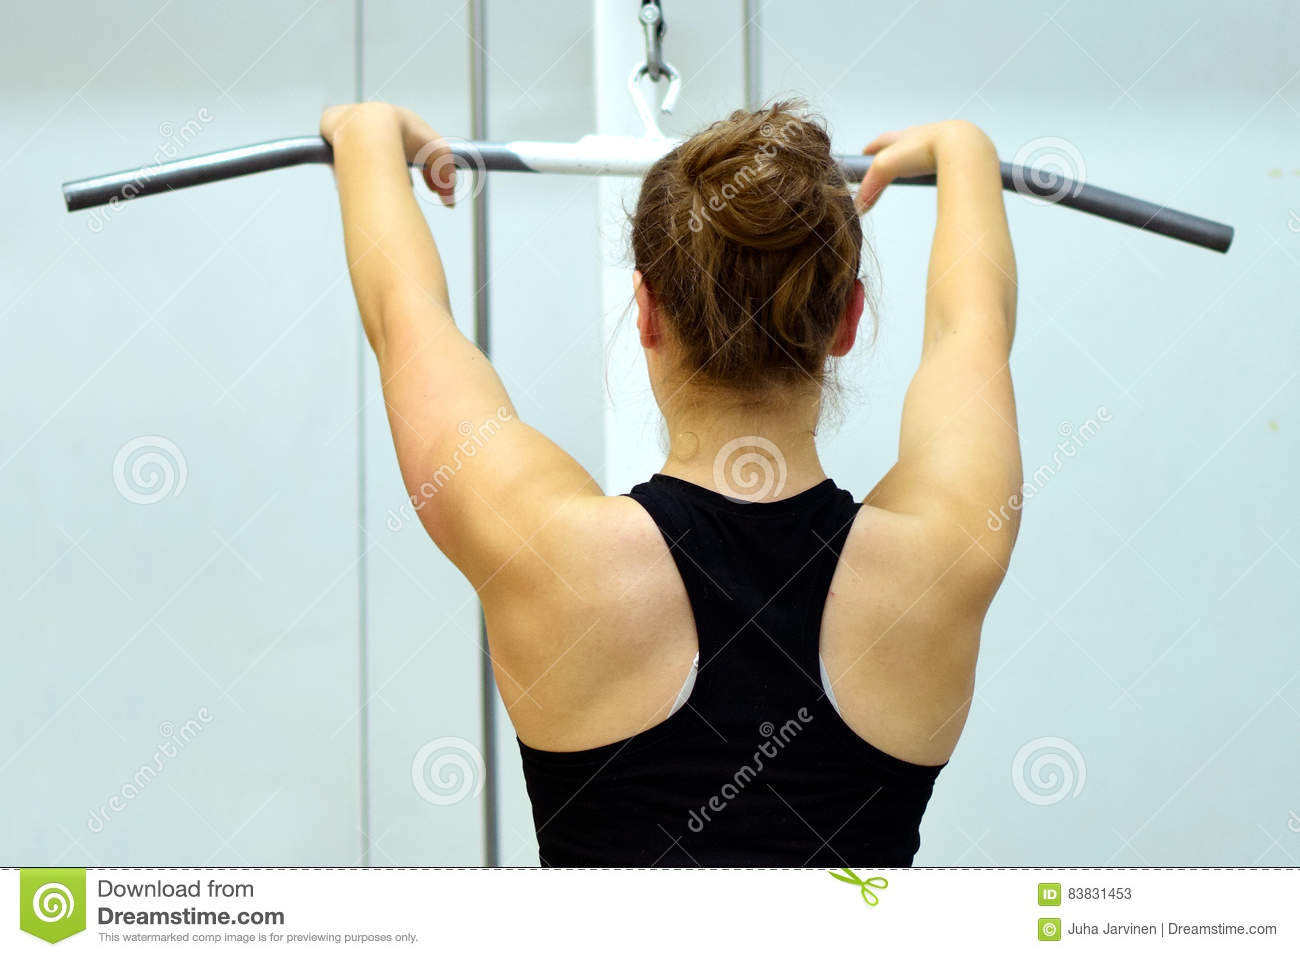 Woman Workout Her Back Muscles And Arms Stock Image - Image of build ...